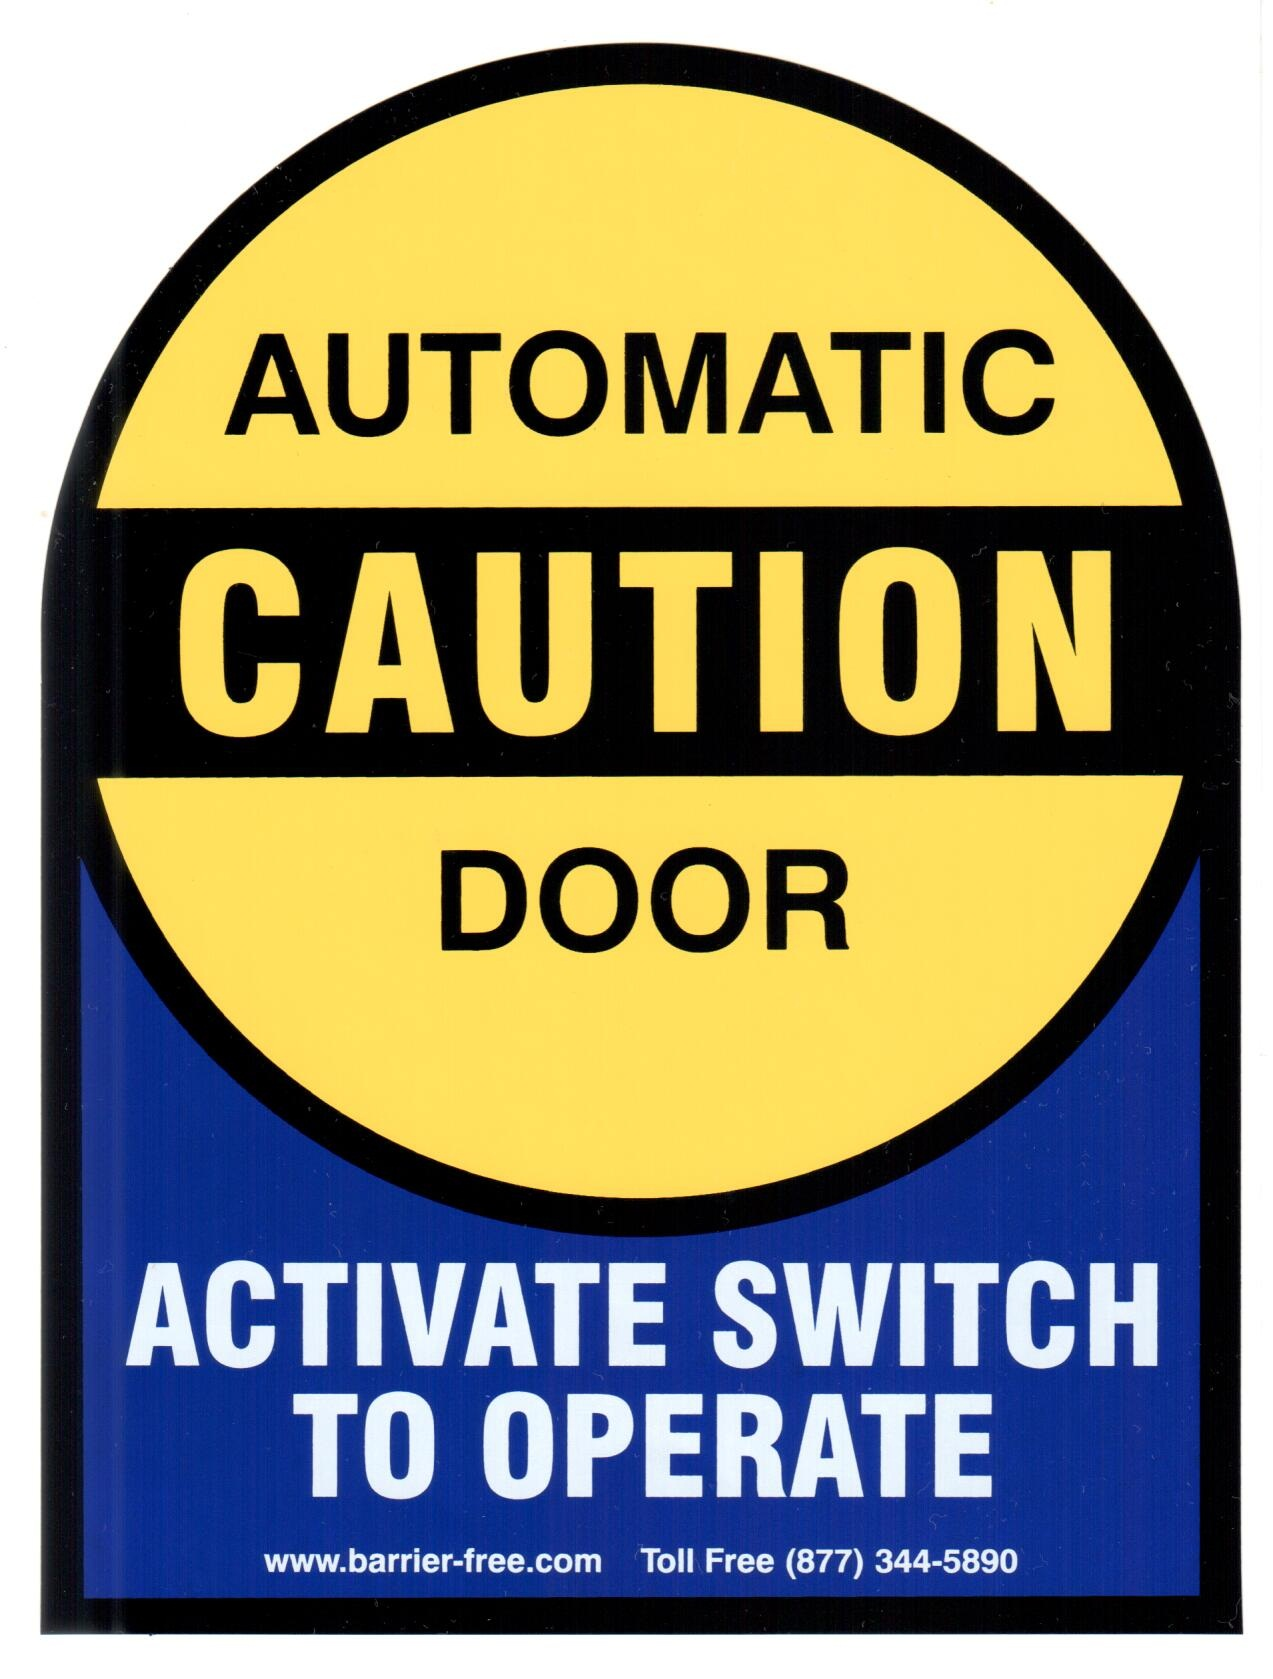 Caution Automatic Door Decal with Activate Switch to Operate  sc 1 st  Barrier Free Access Systems & ADA Code Requirements for Signage - info at Barrier Free Access ...